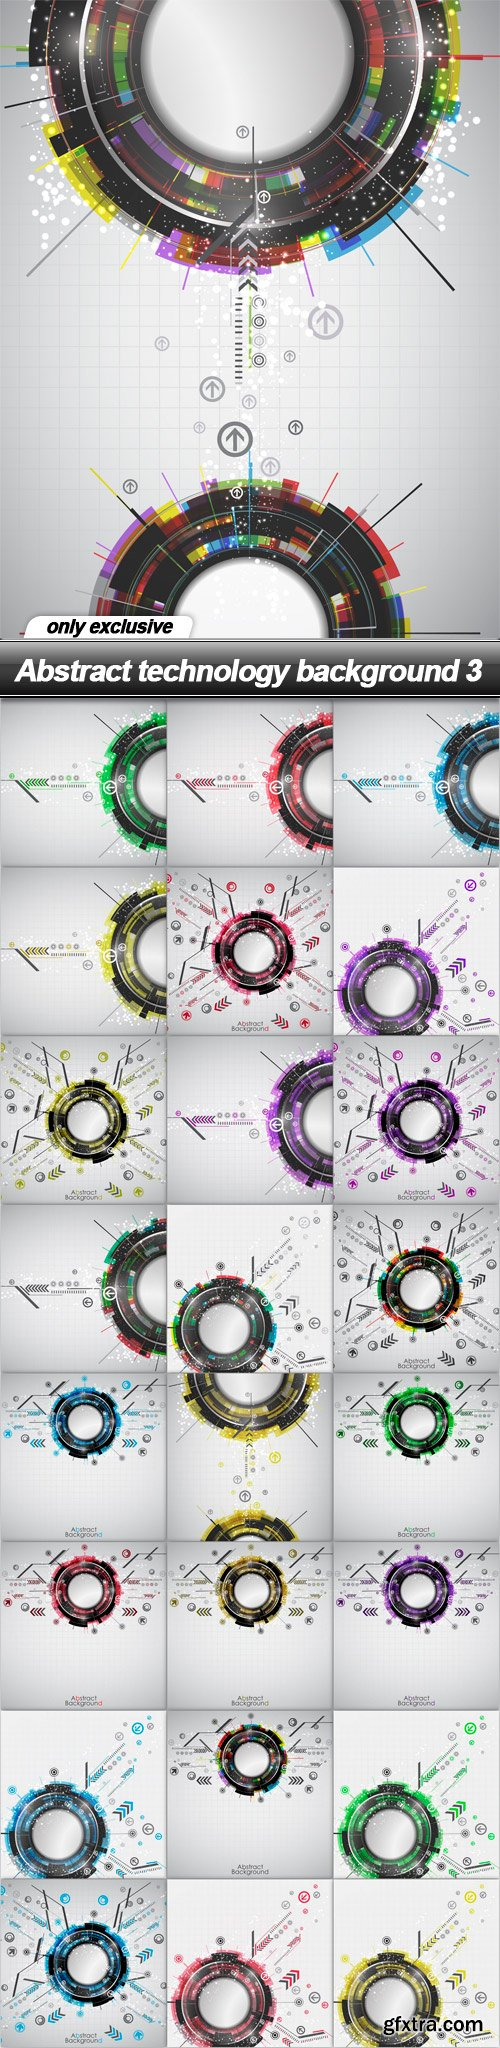 Abstract technology background 3 - 25 EPS